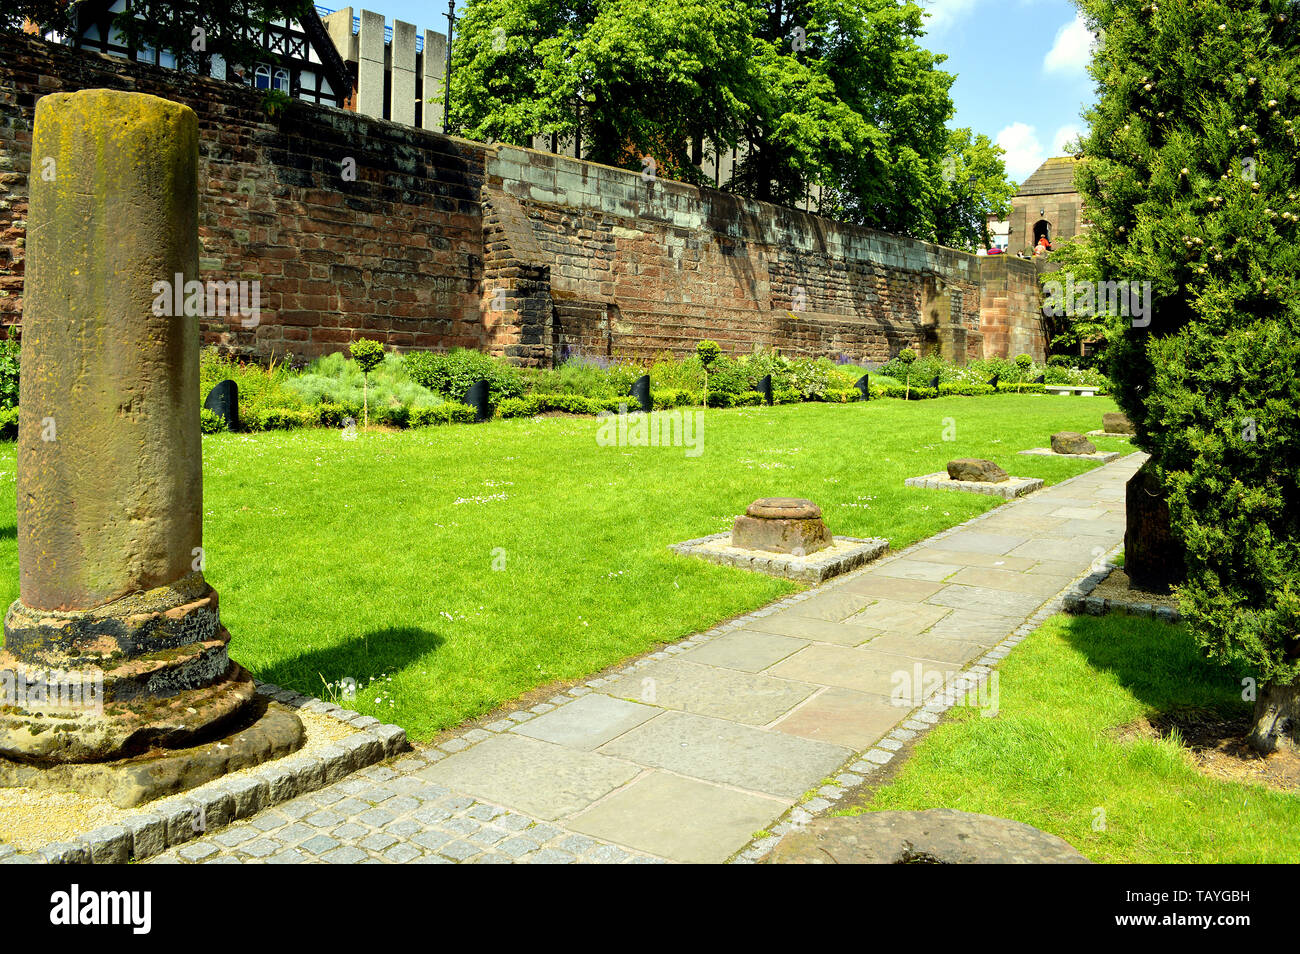 Roman Gardens in Chester were laid out in 1949 to display the Roman building fragments from the Roman legionary fortress of Deva discovered in Chester - Stock Image